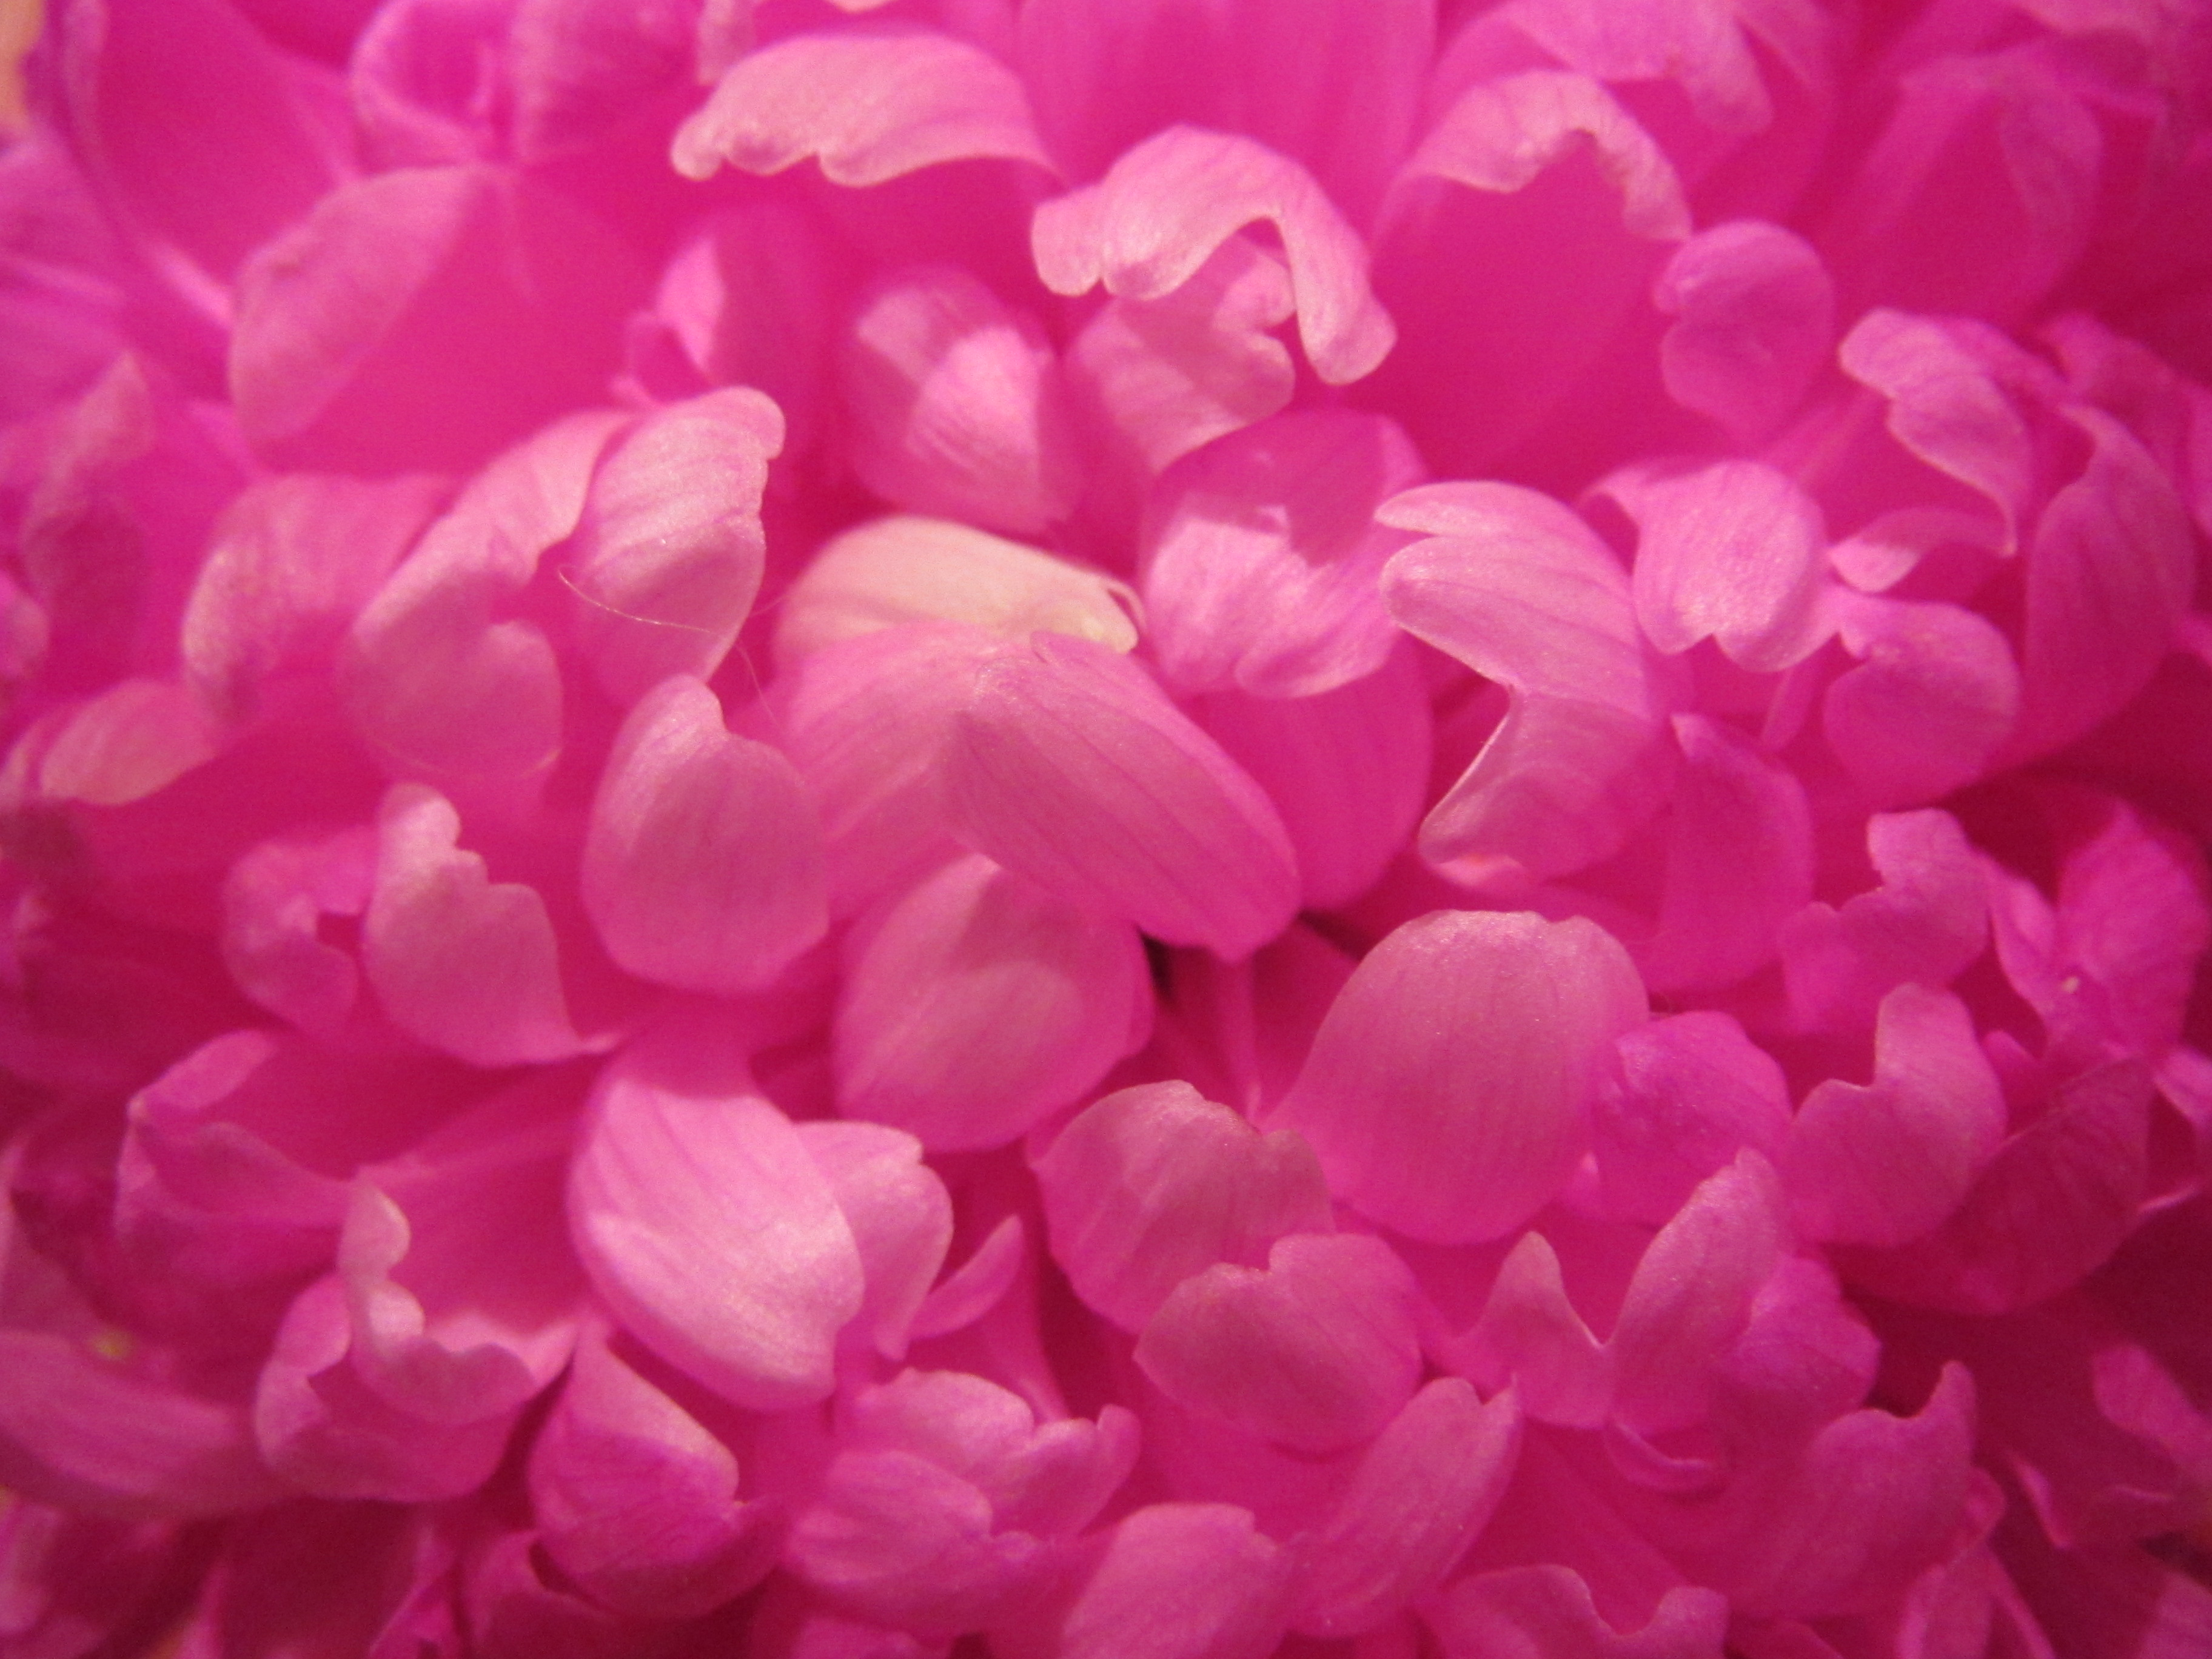 Free photo pink flower wallpaper pink plant pretty free pink flower wallpaper mightylinksfo